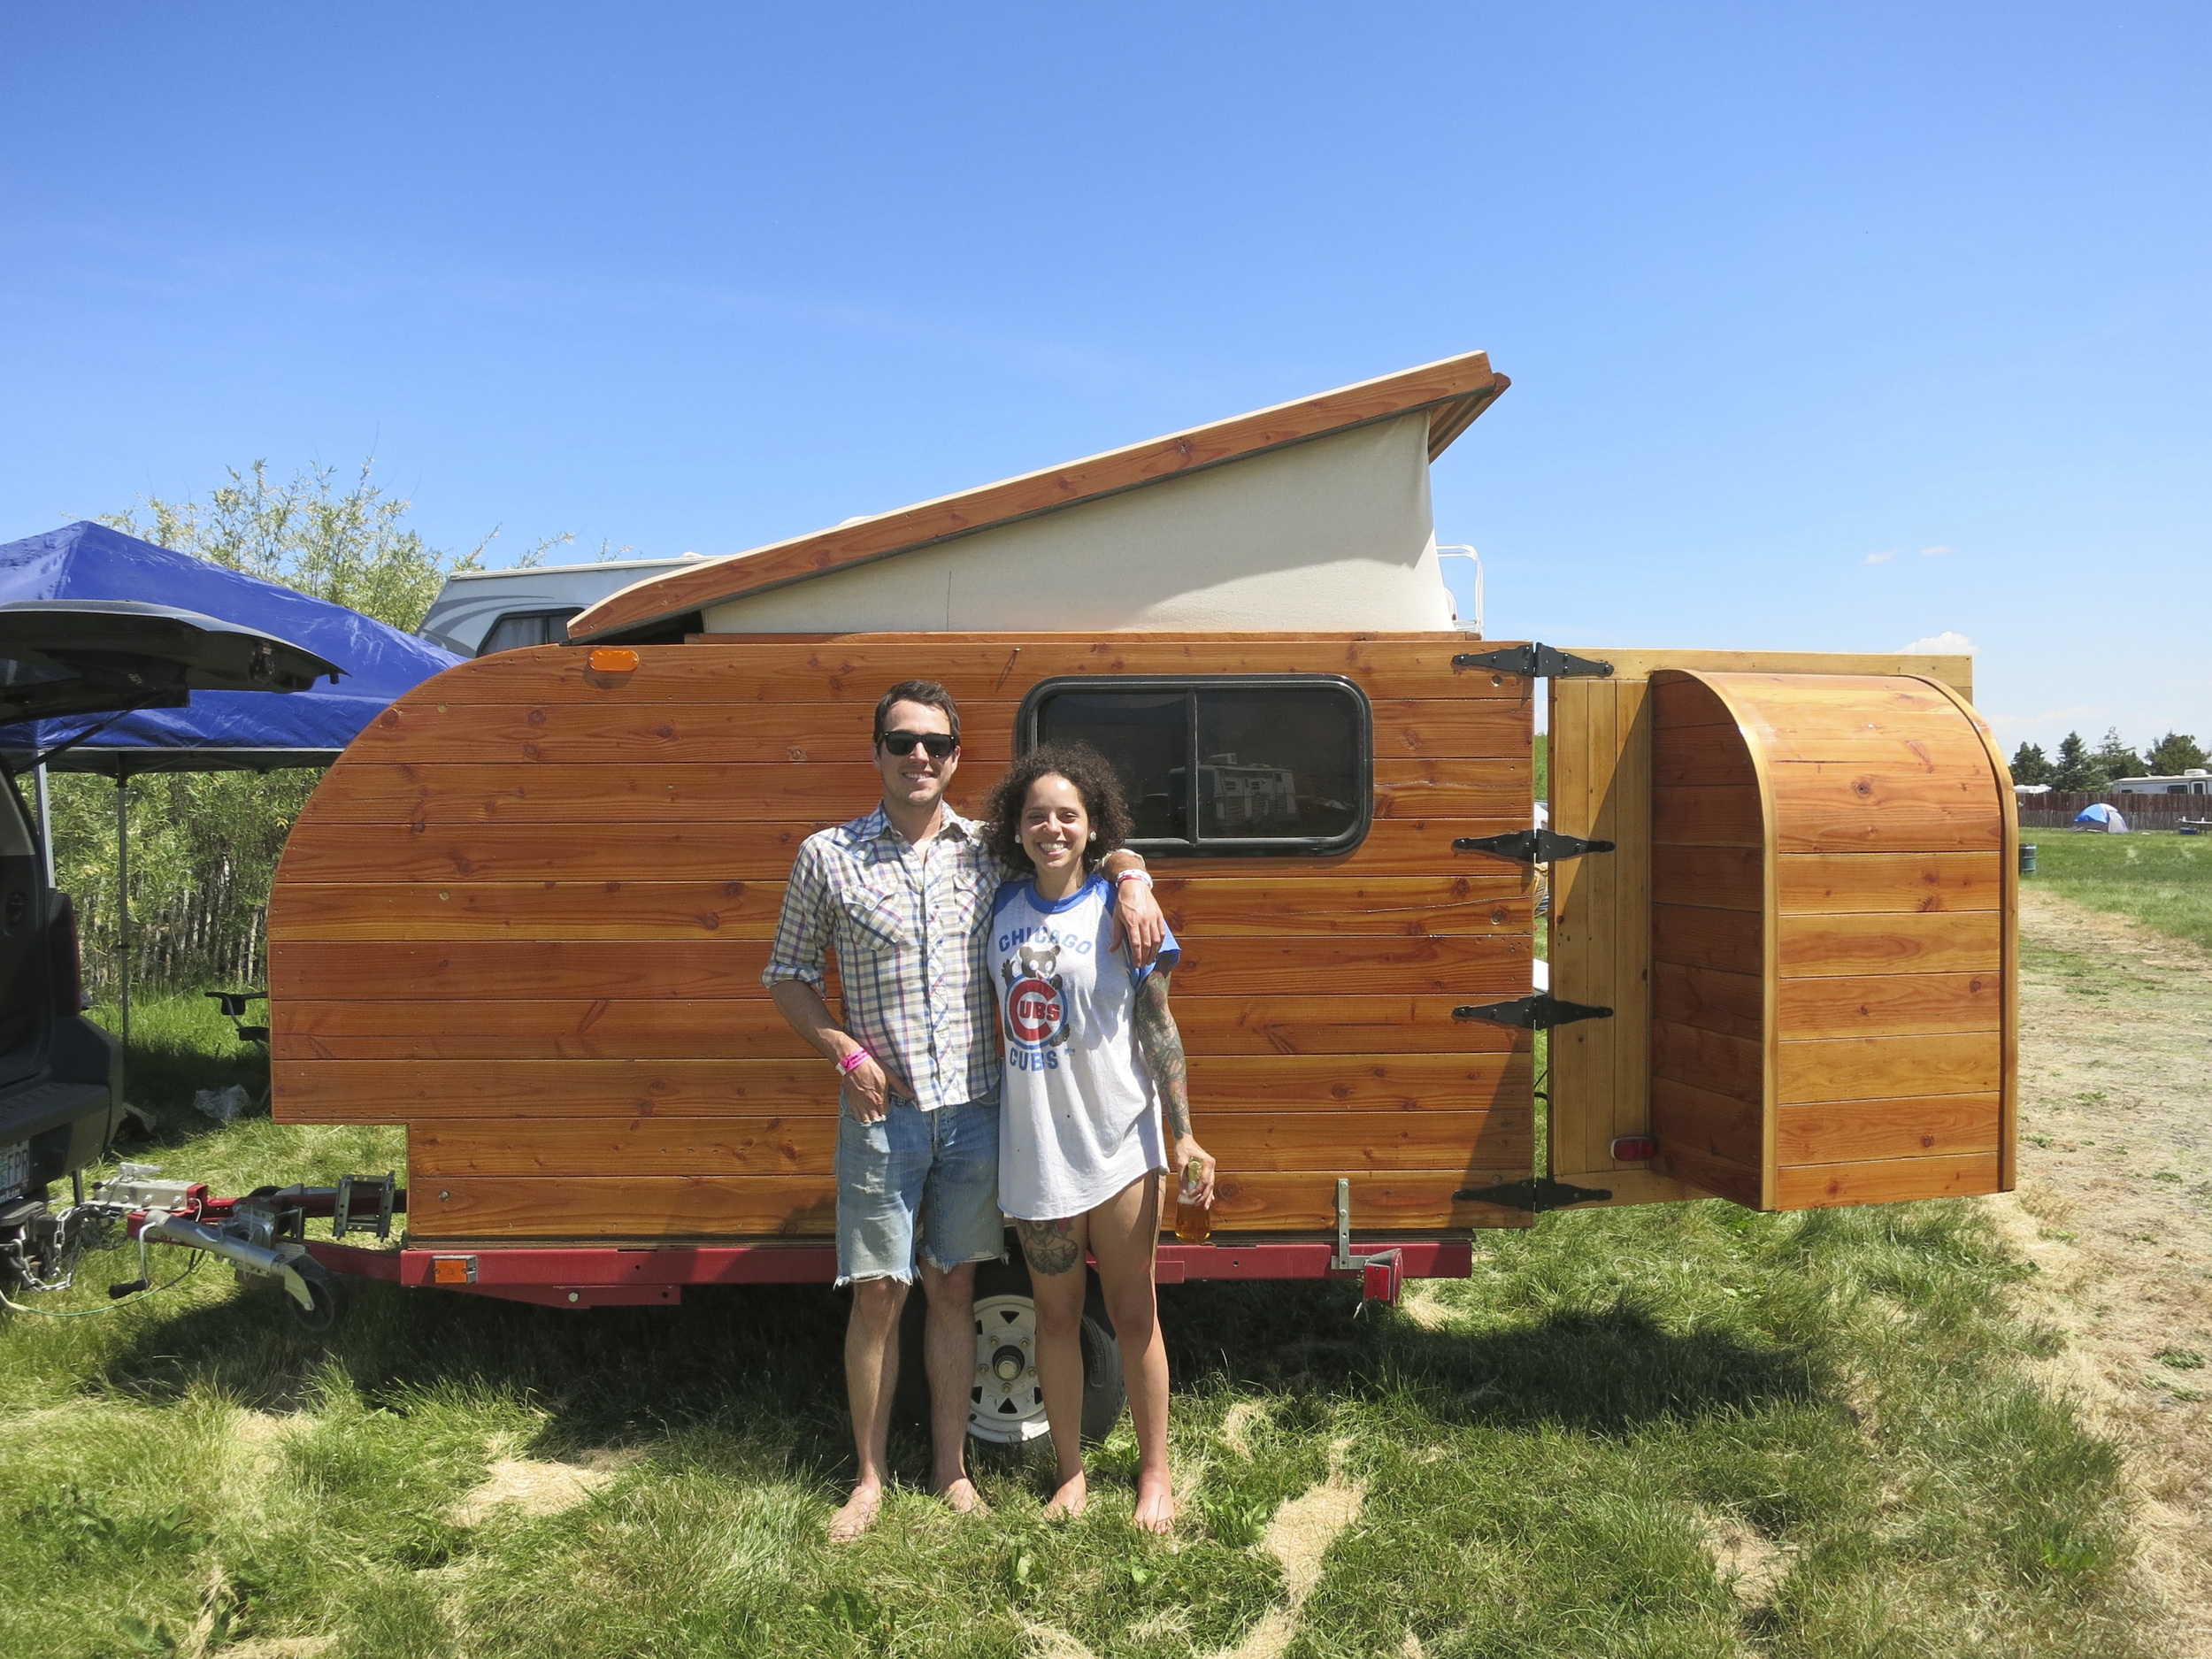 Our new friends had a rad homebuilt trailer